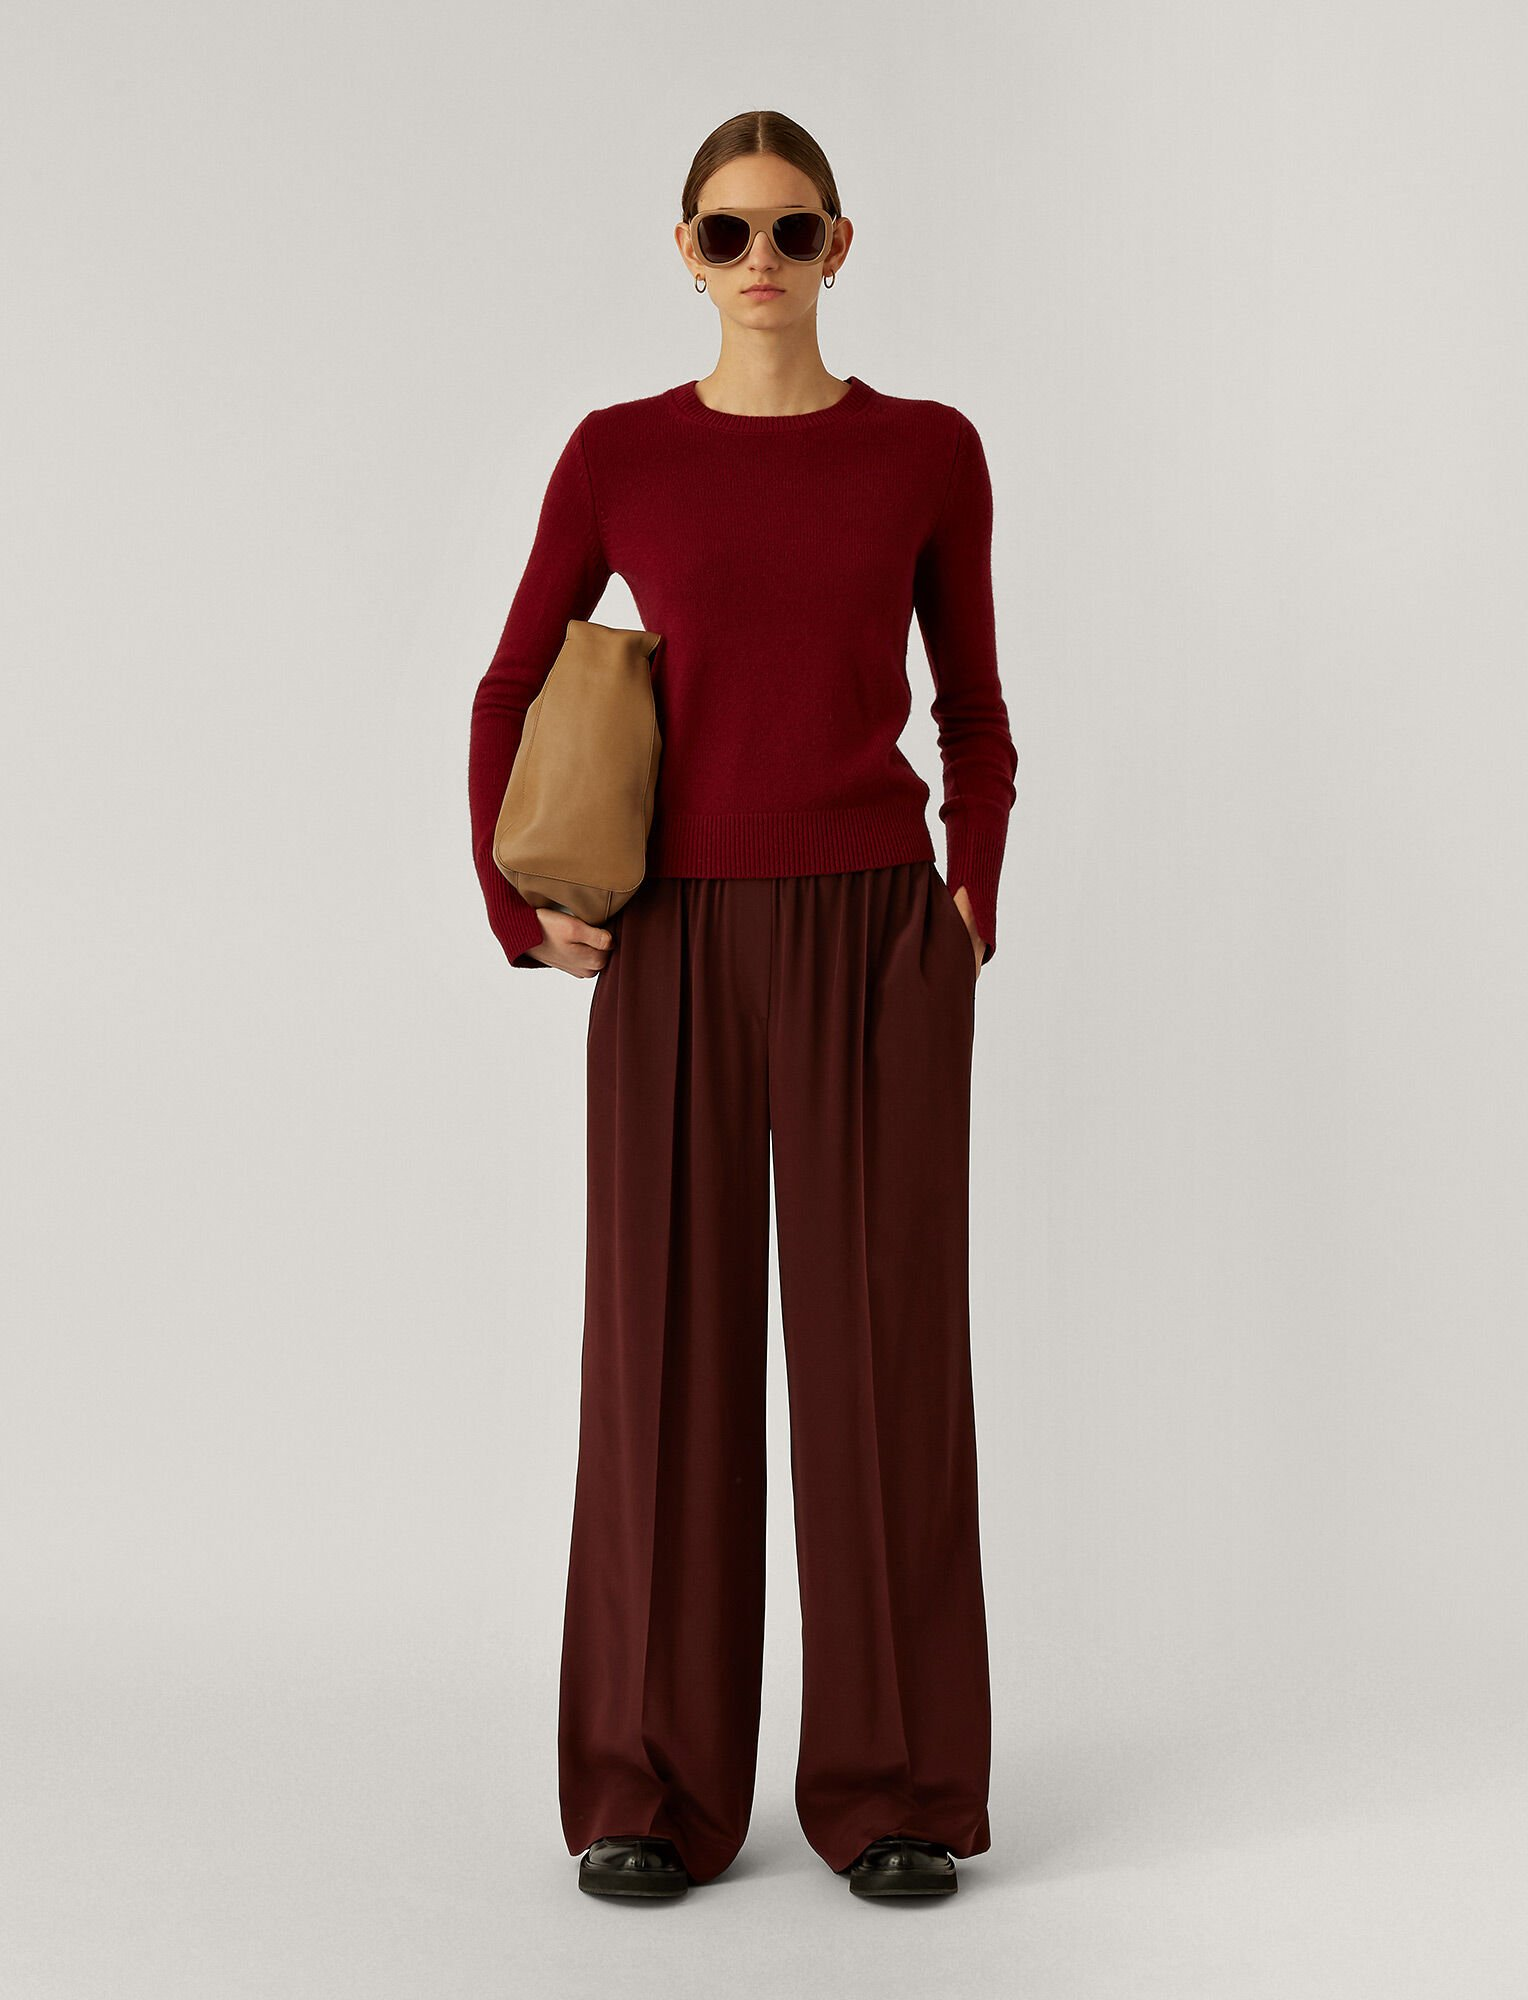 Joseph, Taffy Crepe De Chine Trousers, in Ganache